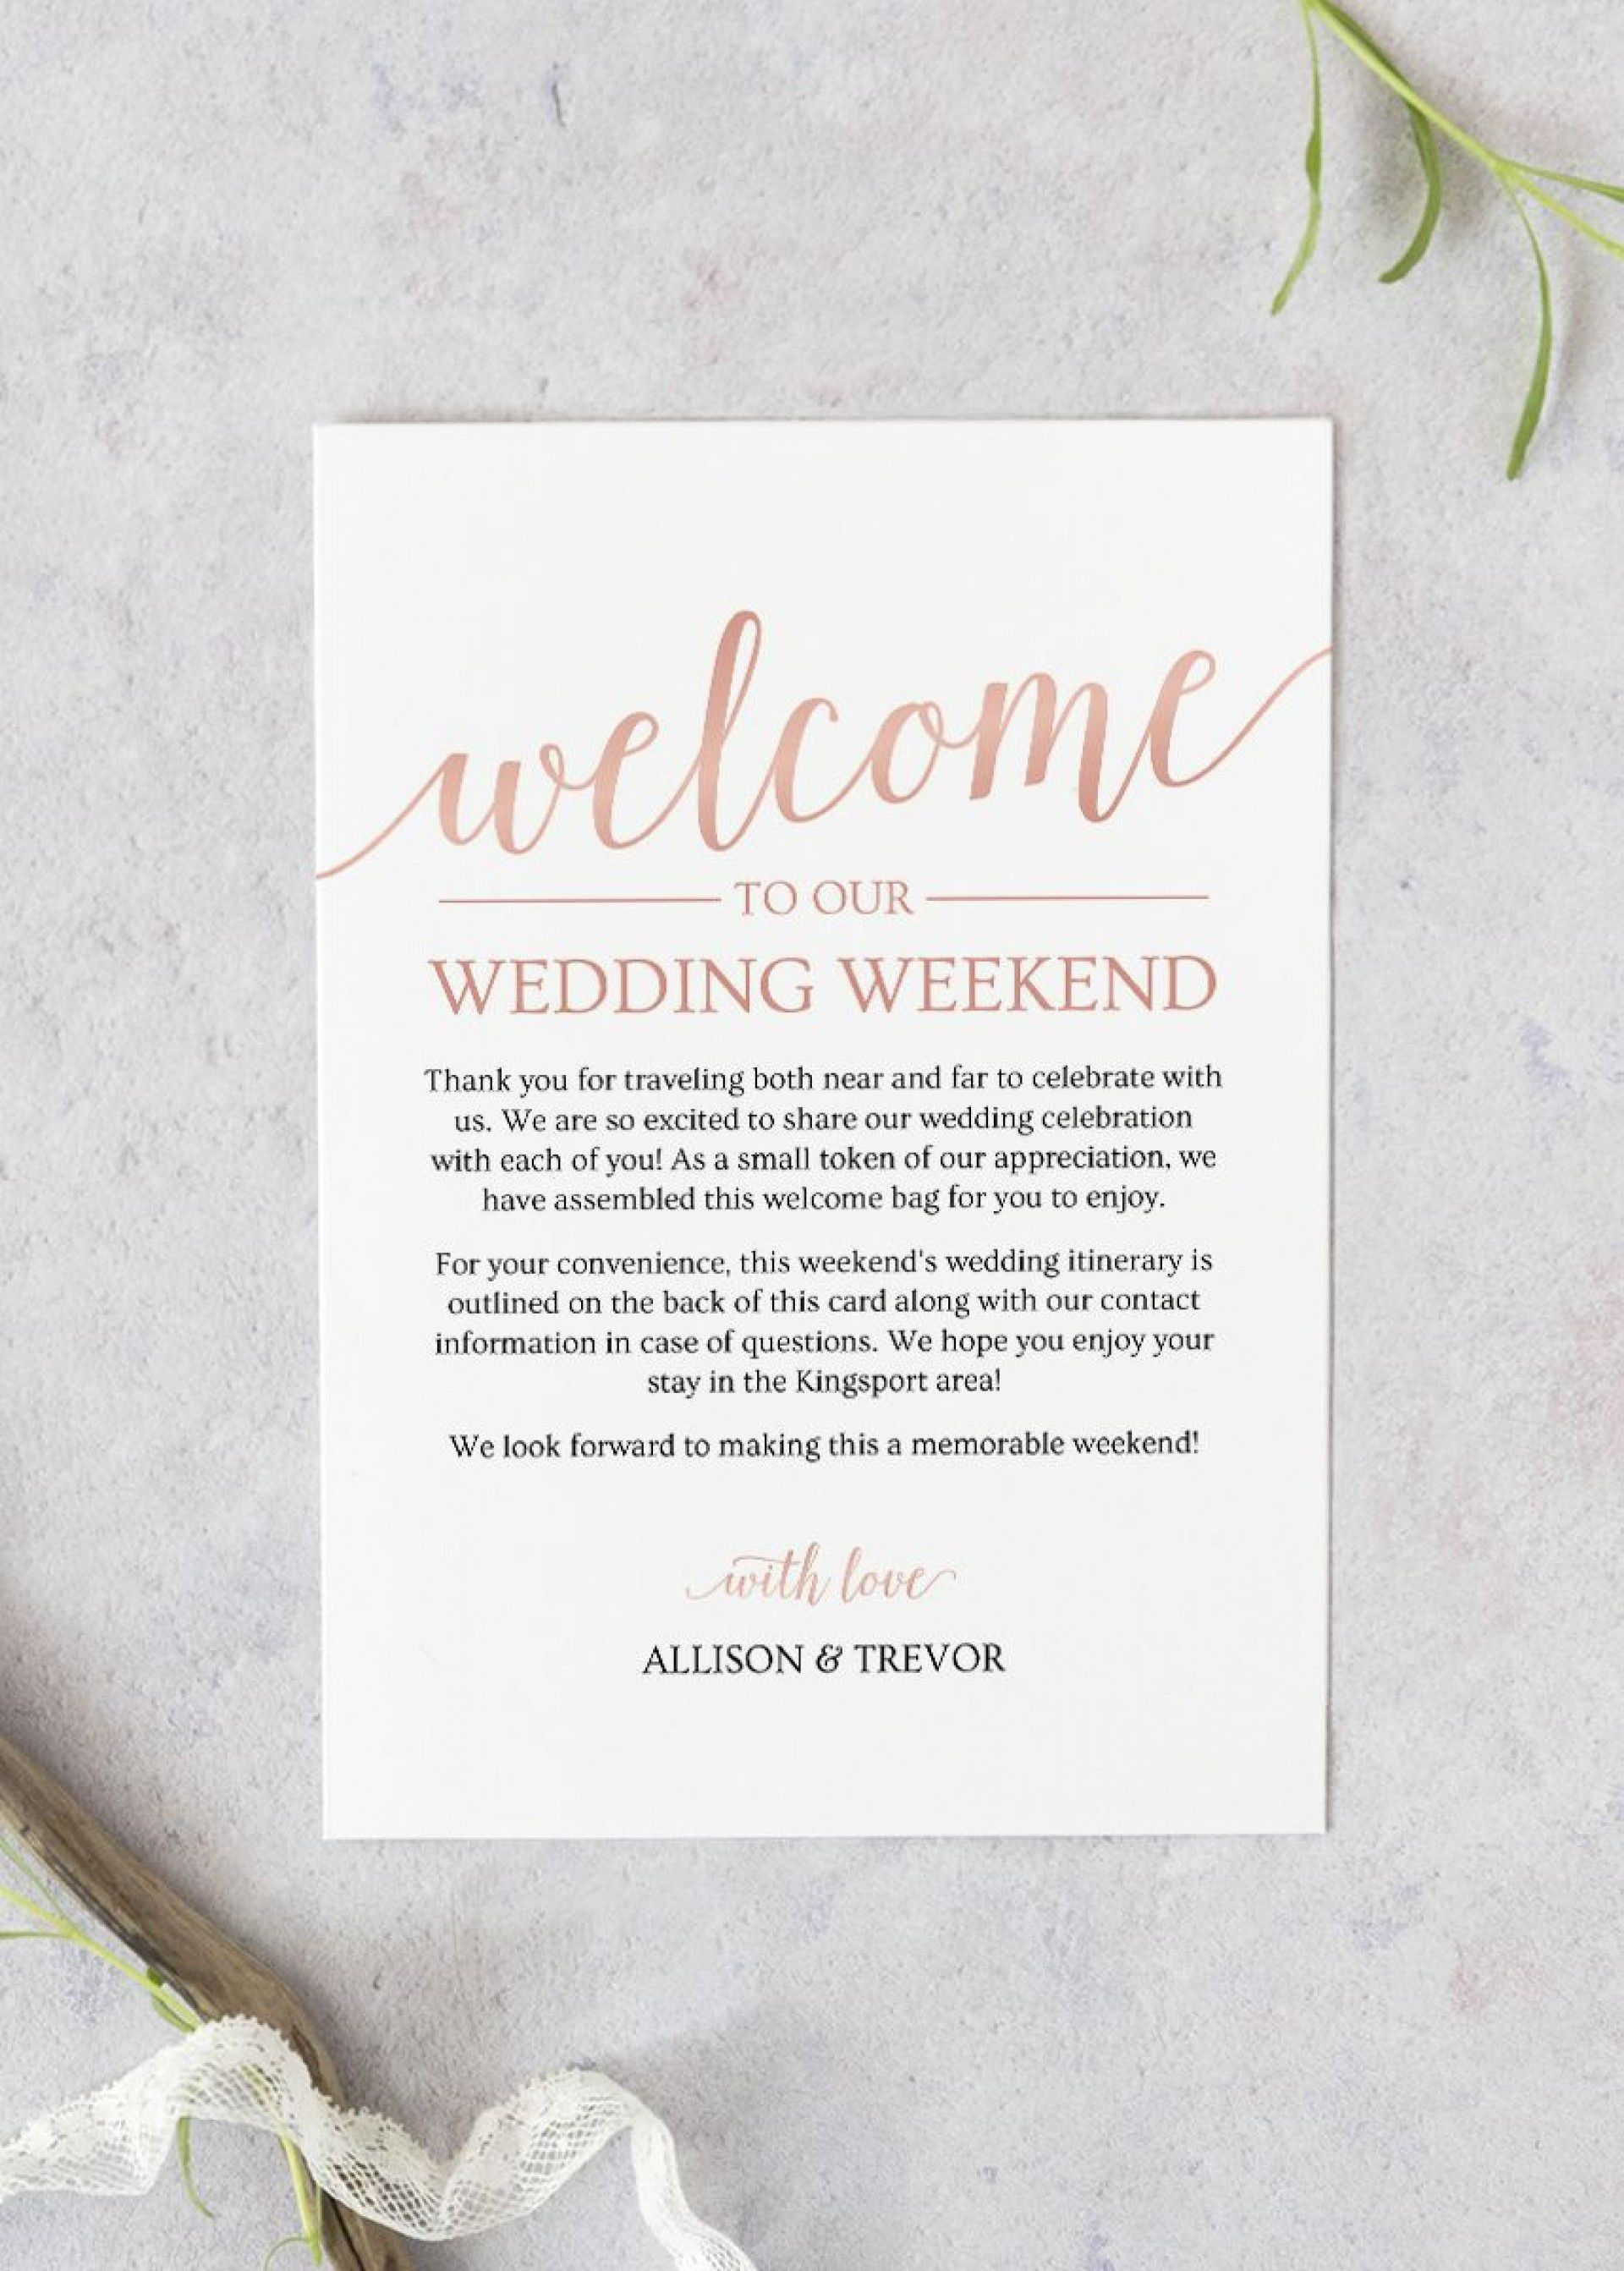 000 Striking Cruise Wedding Welcome Letter Template High Definition 1920